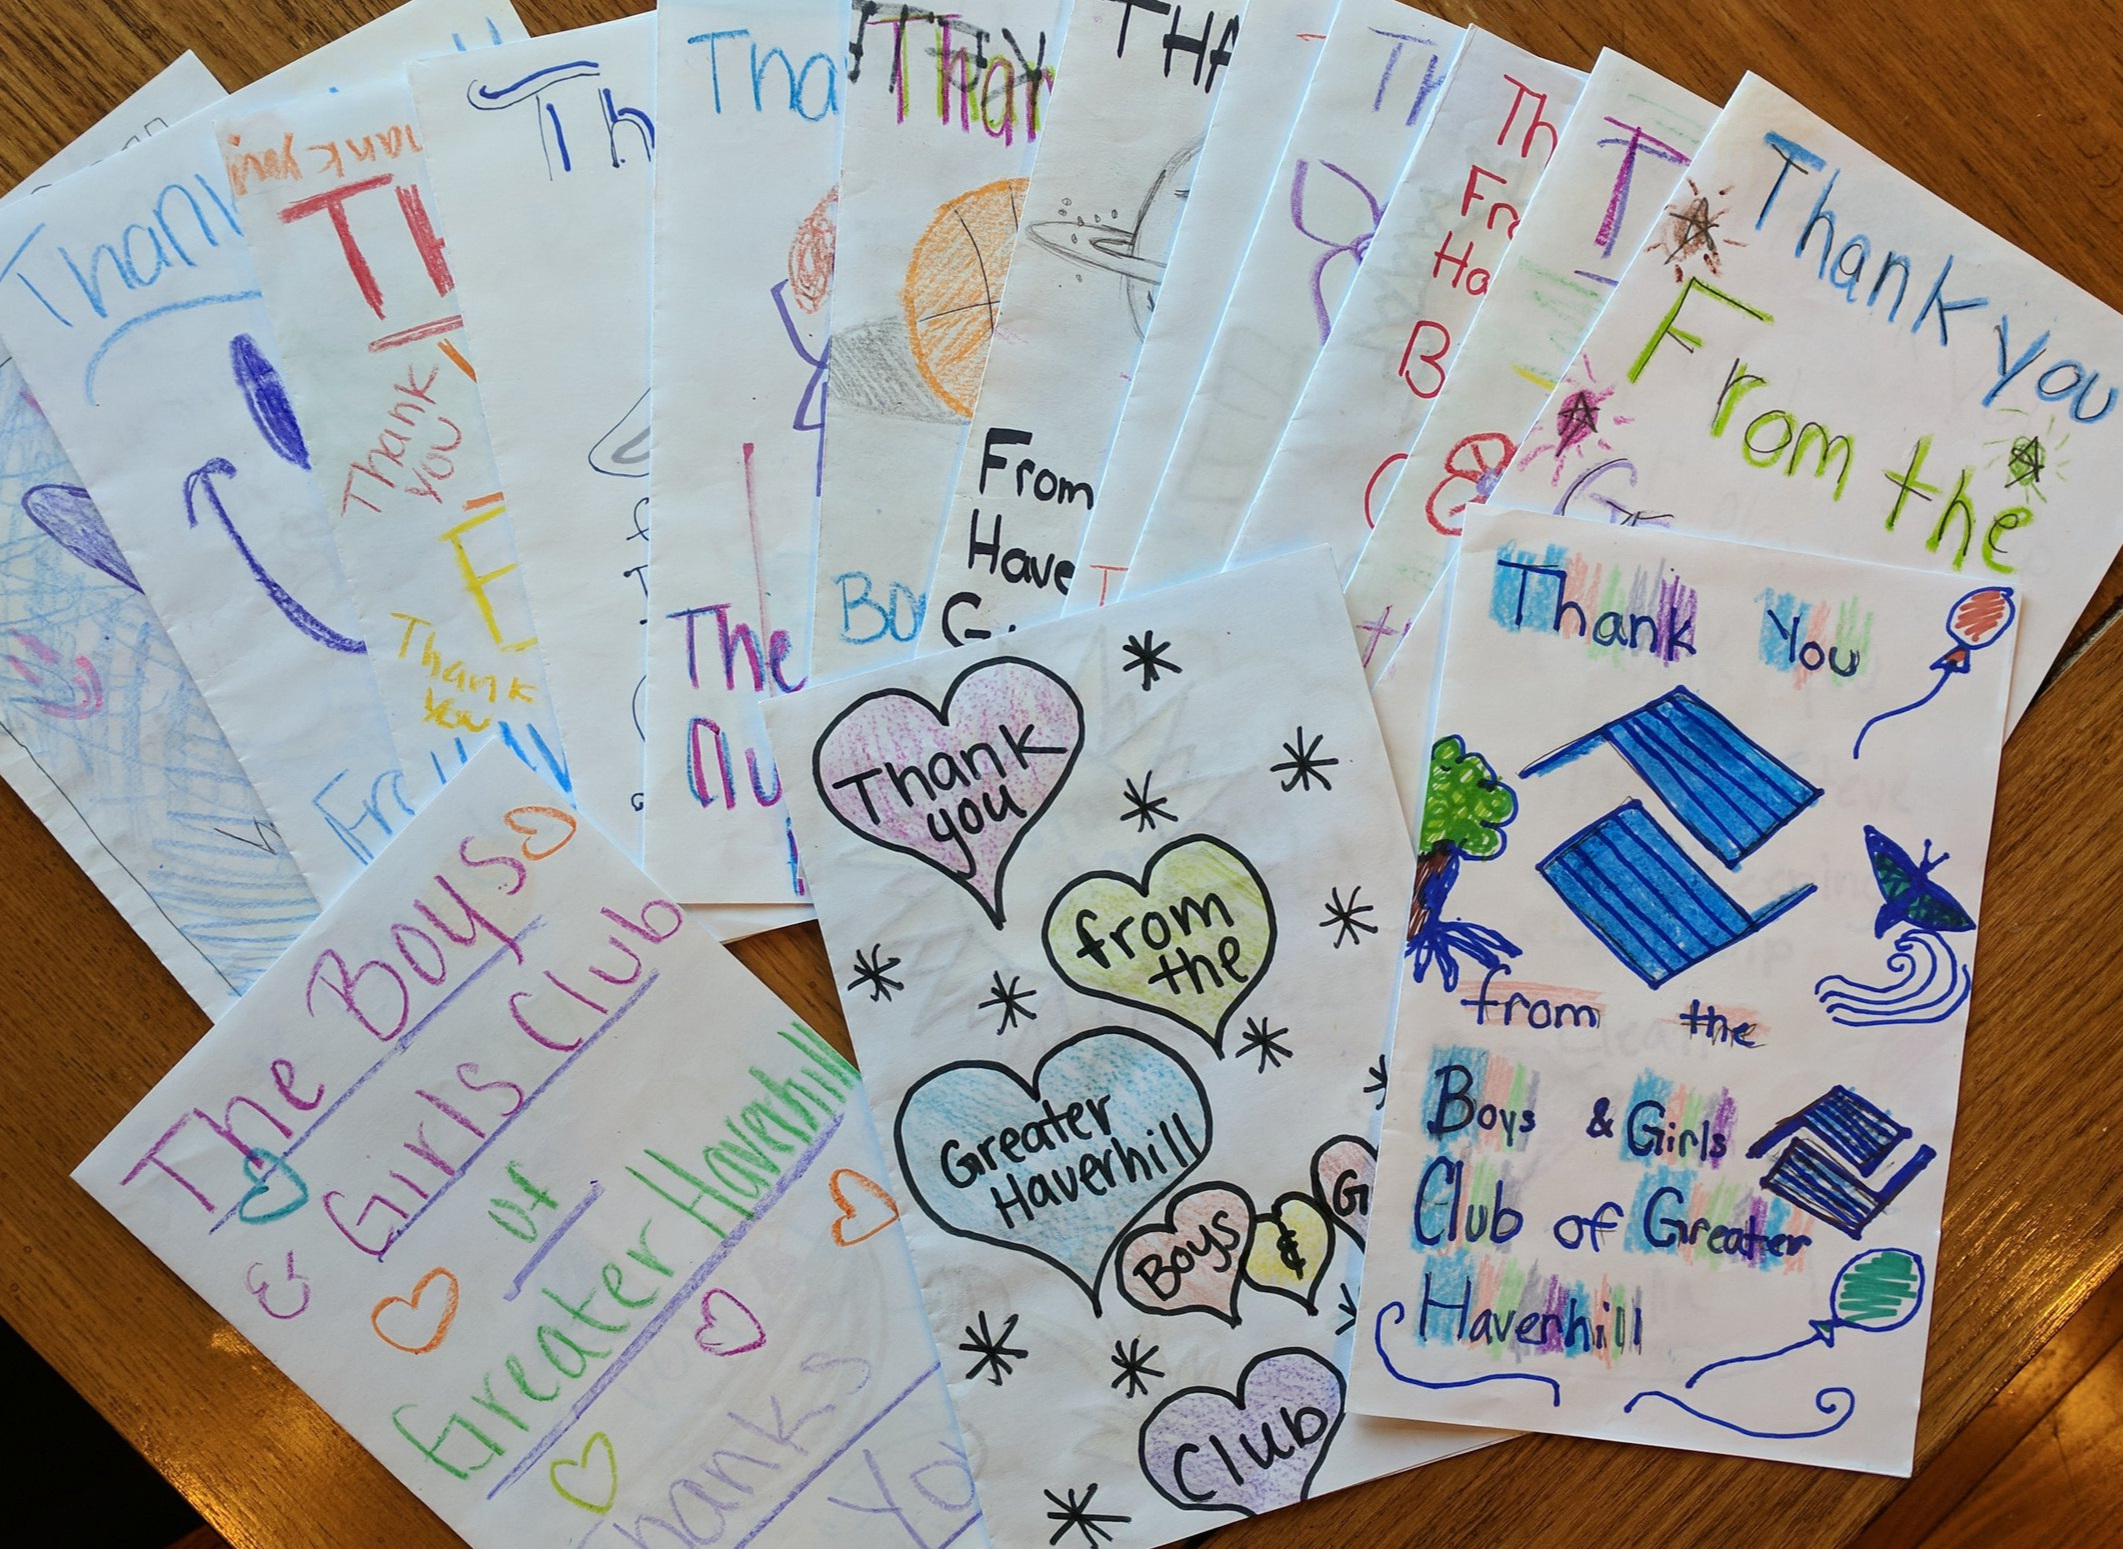 Here are a few thank you notes from the Boys and Girls Club following our For Our Community work at Camp Tasker.